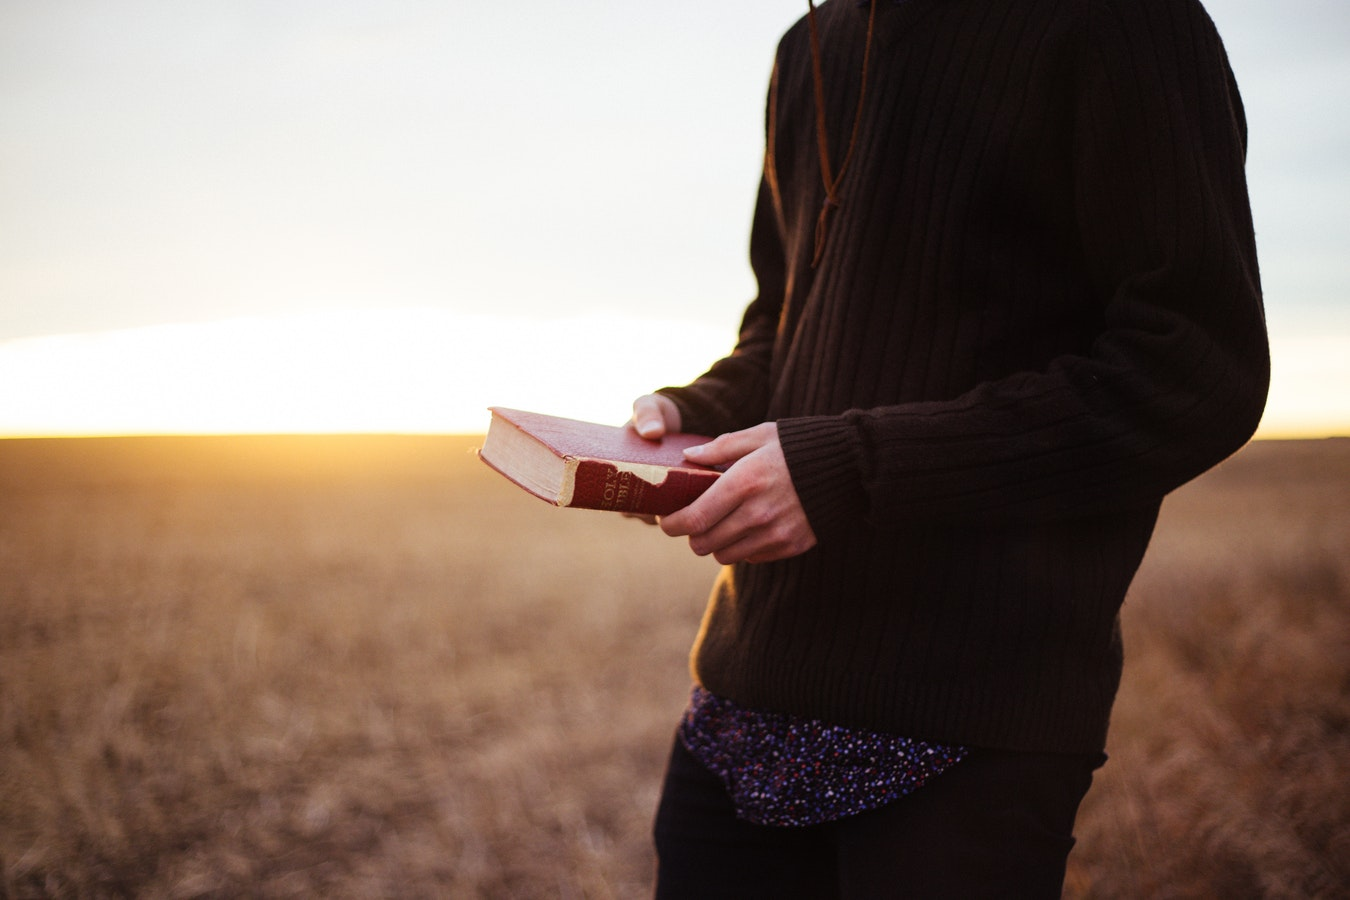 3 Characteristics of a Kingdom Disciple